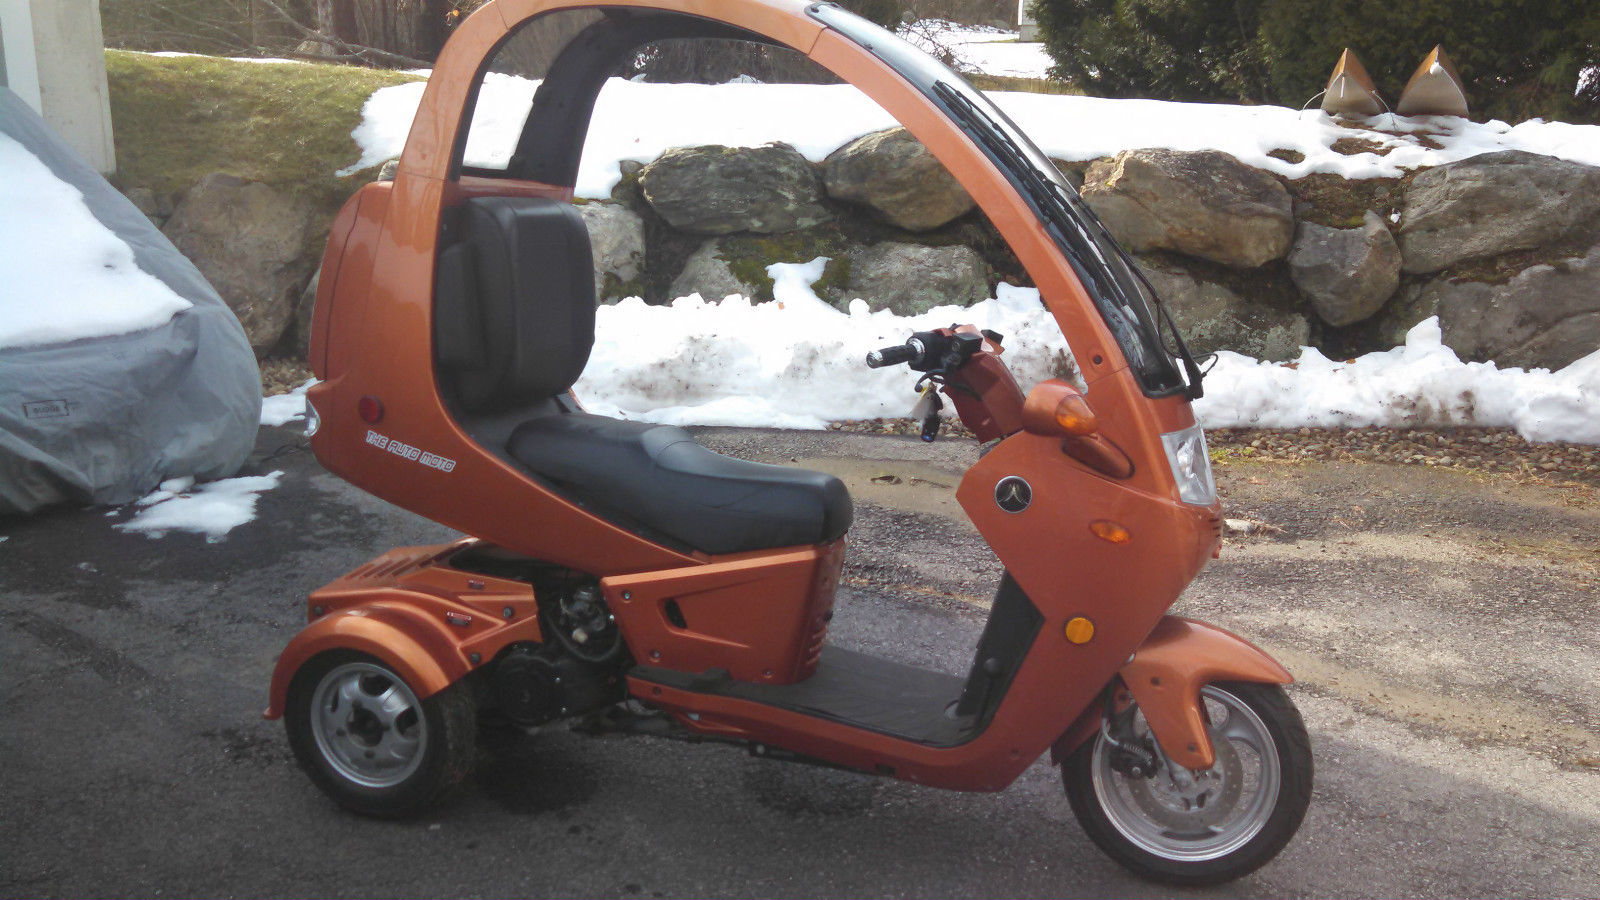 The Auto Moto 3 Wheel Scooter 150cc Scooter Trike 3 Wheel